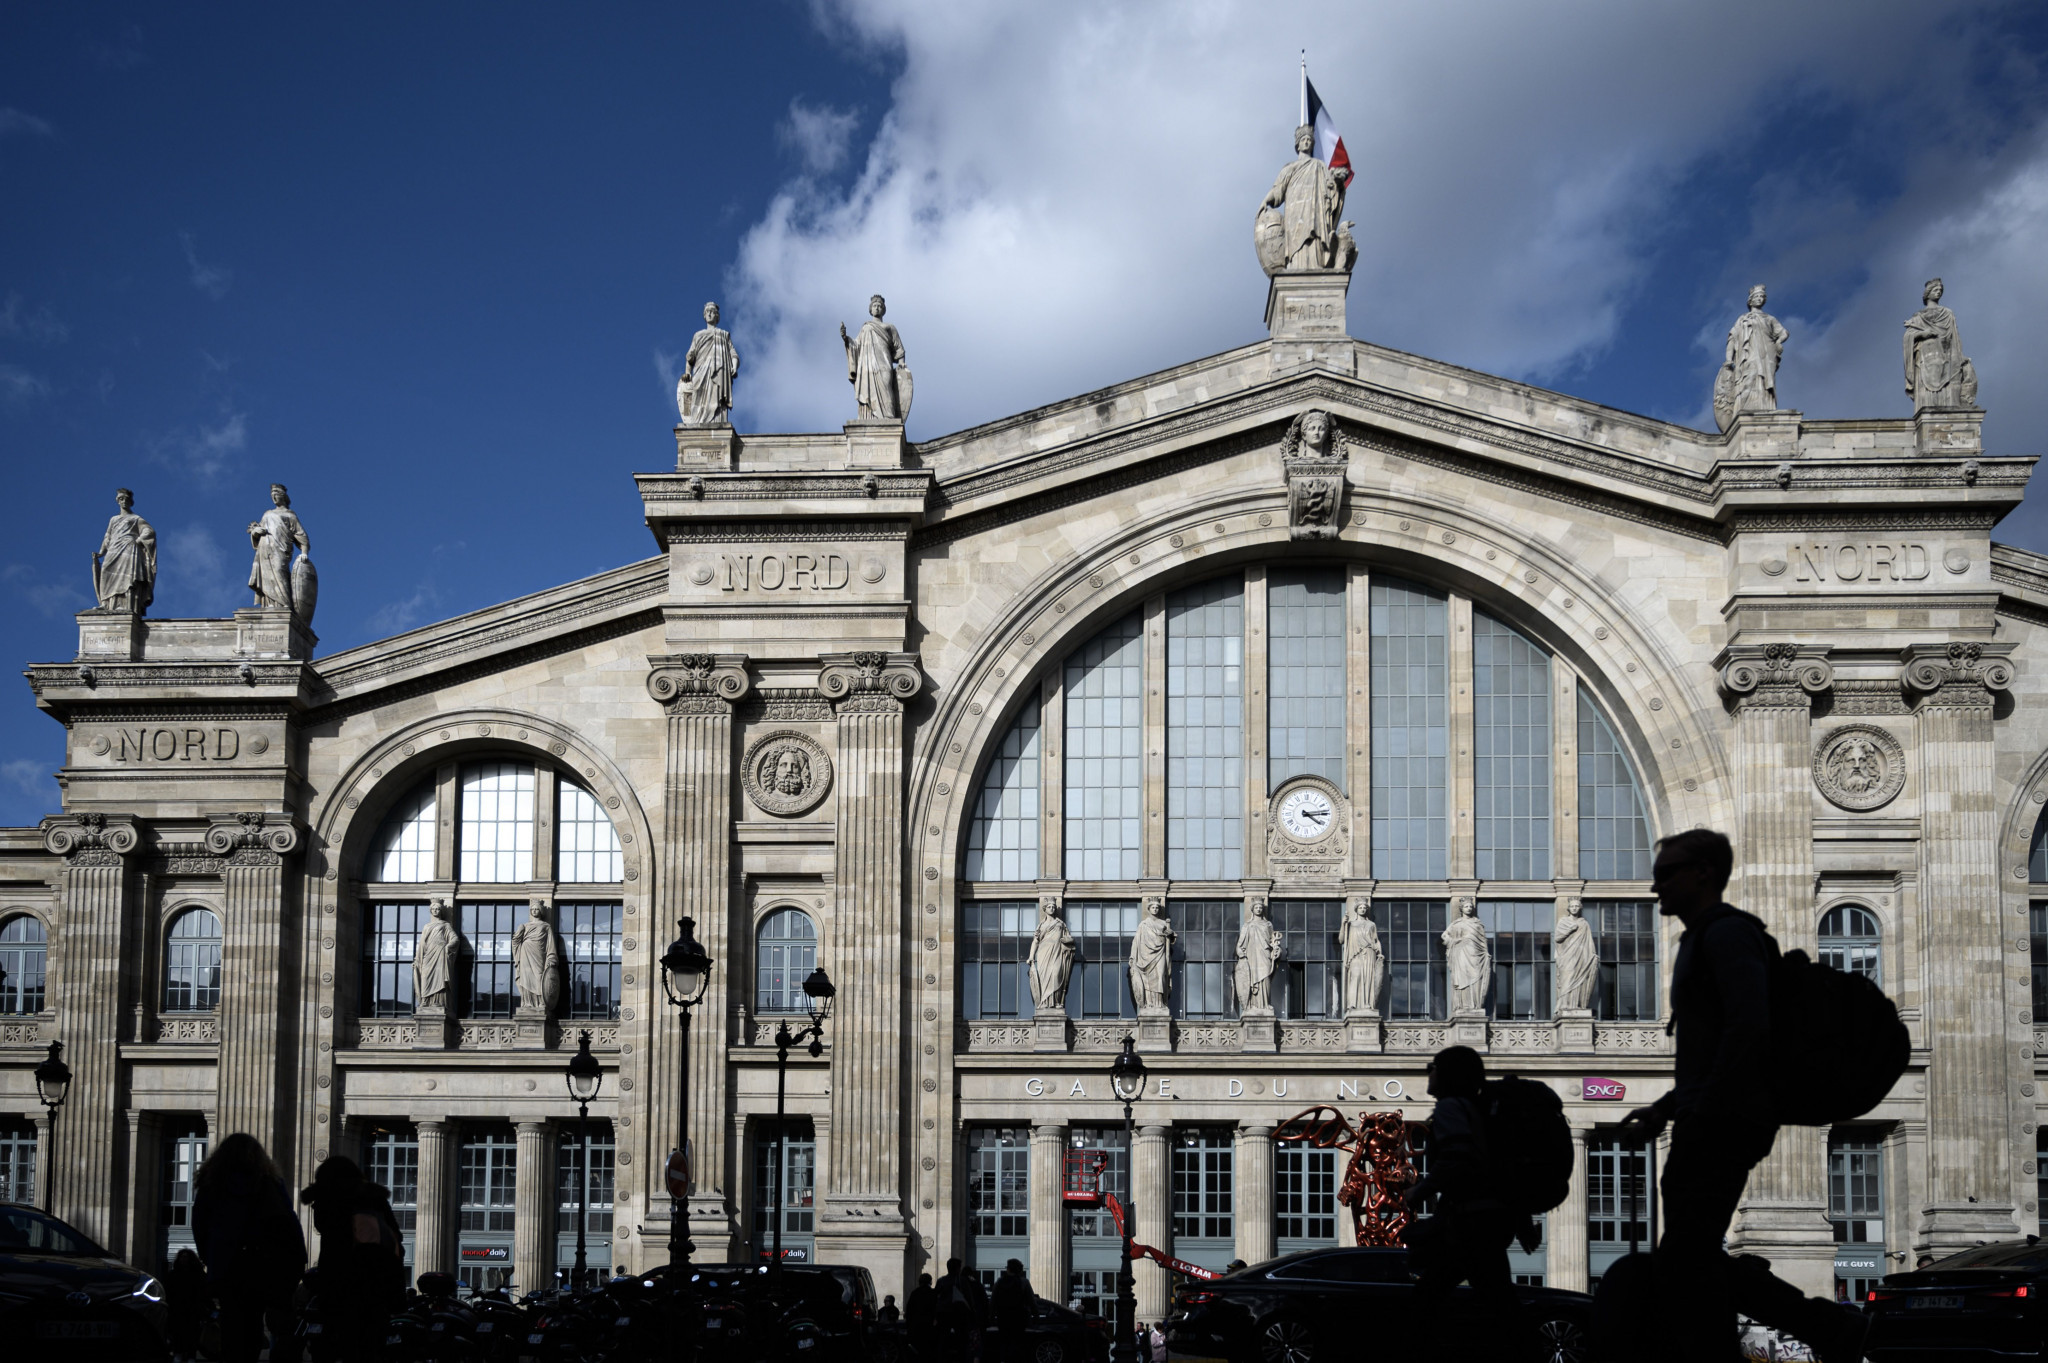 Major project to transform Gare du Nord in time for Paris 2024 abandoned